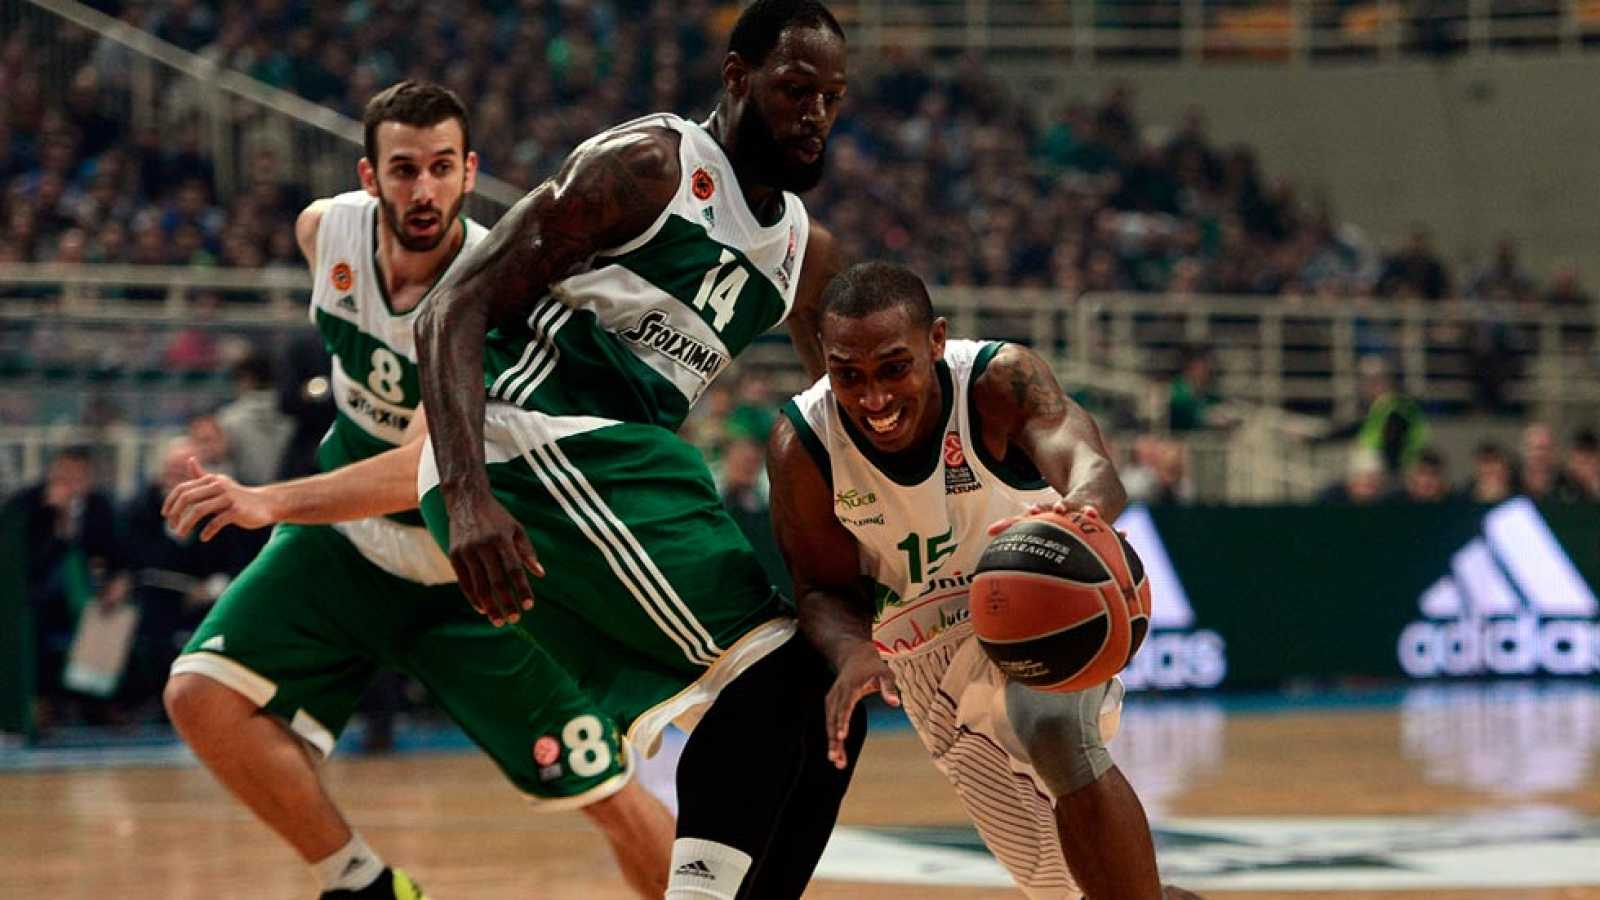 Panathinaikos 68-66 Unicaja